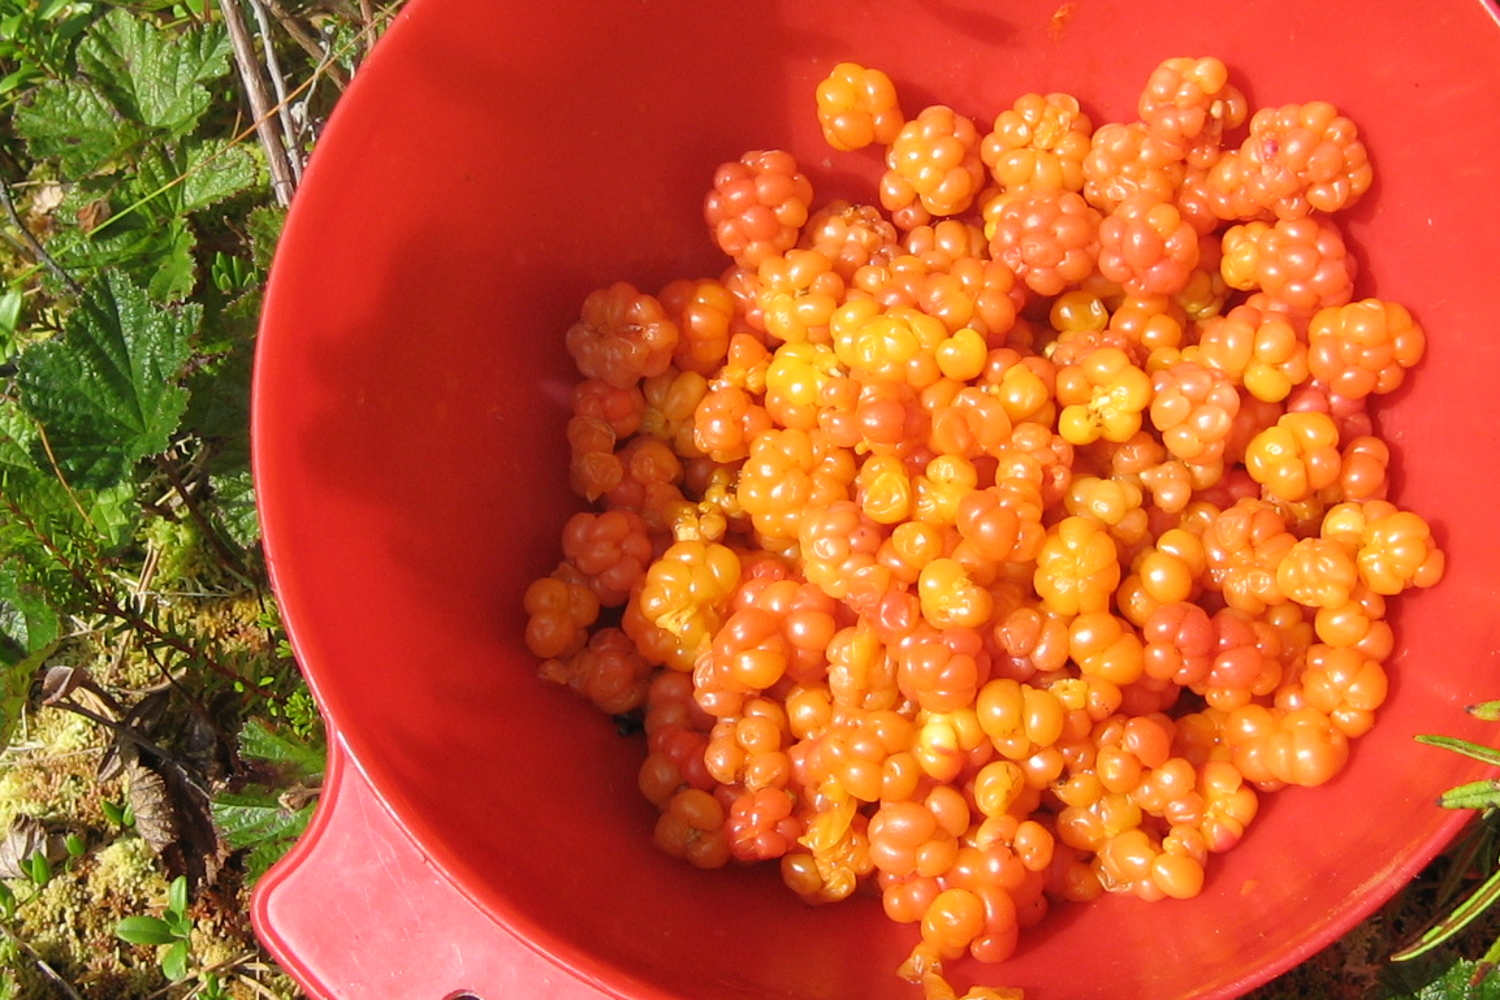 Cloudberries grow wild in alpine and artic regions